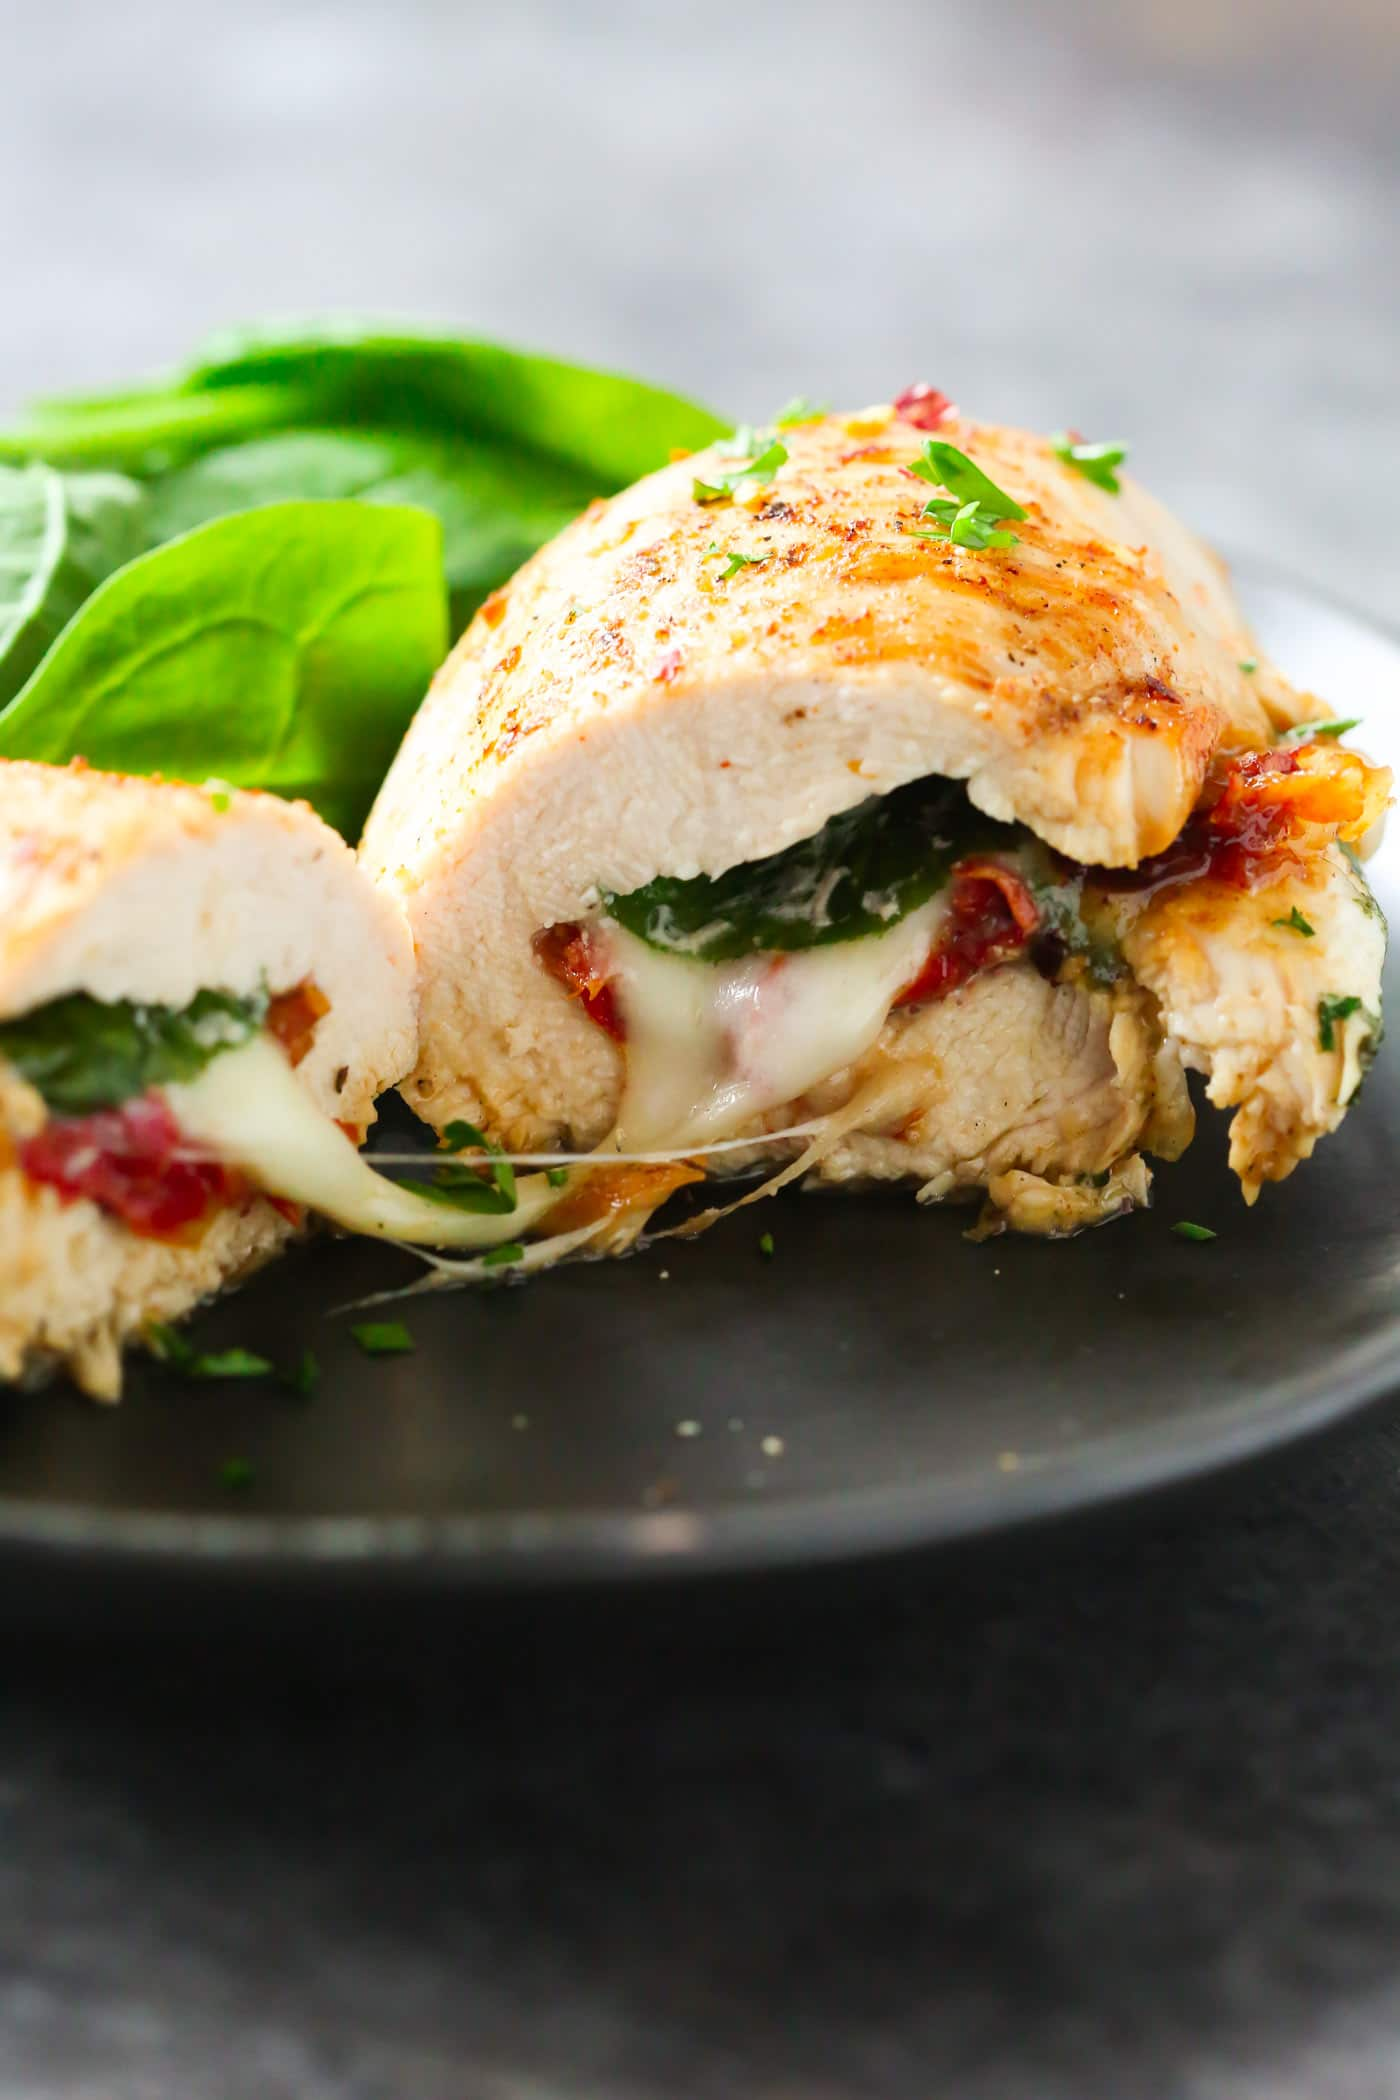 Sun Dried Tomato, Spinach and Cheese Stuffed Chicken Breast